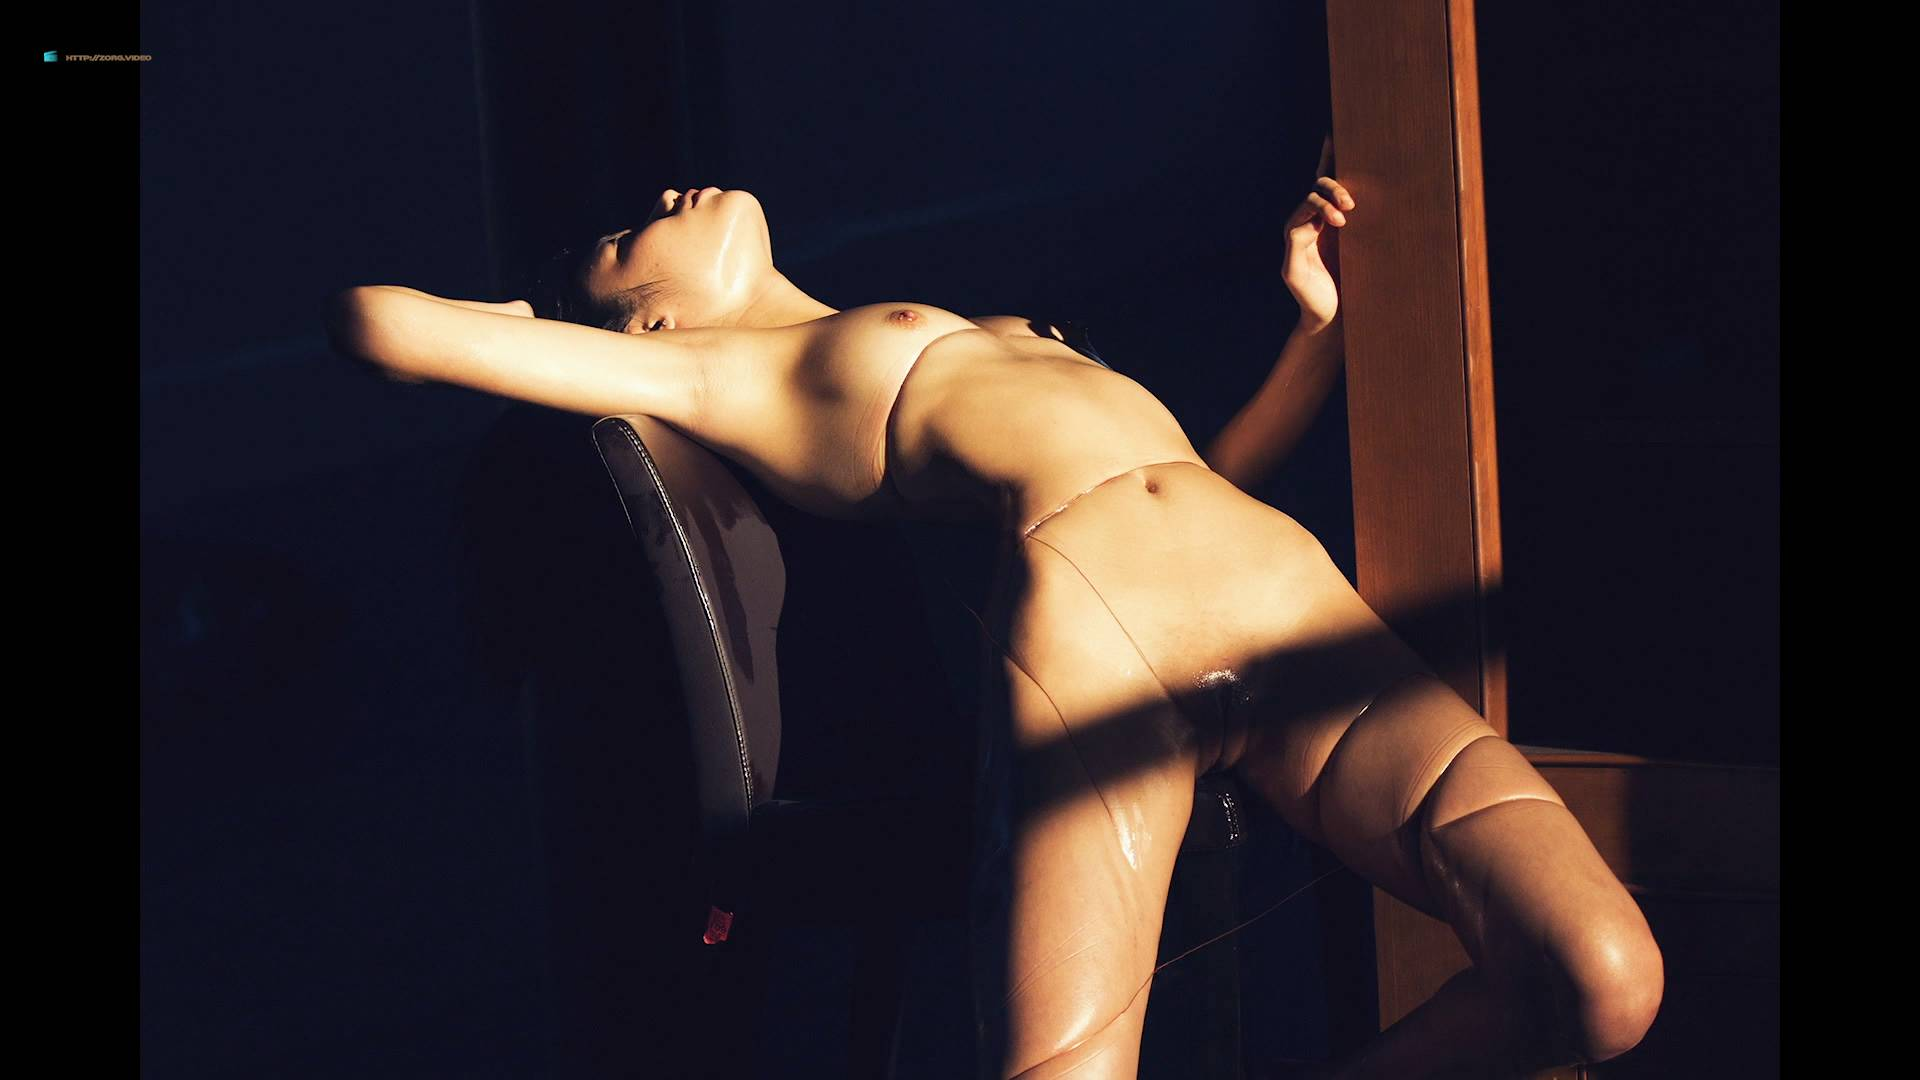 Rachel Cook nude Jessica Clements, Ebonee Davis and others all nude - Nude (2017) HD 1080p (2)